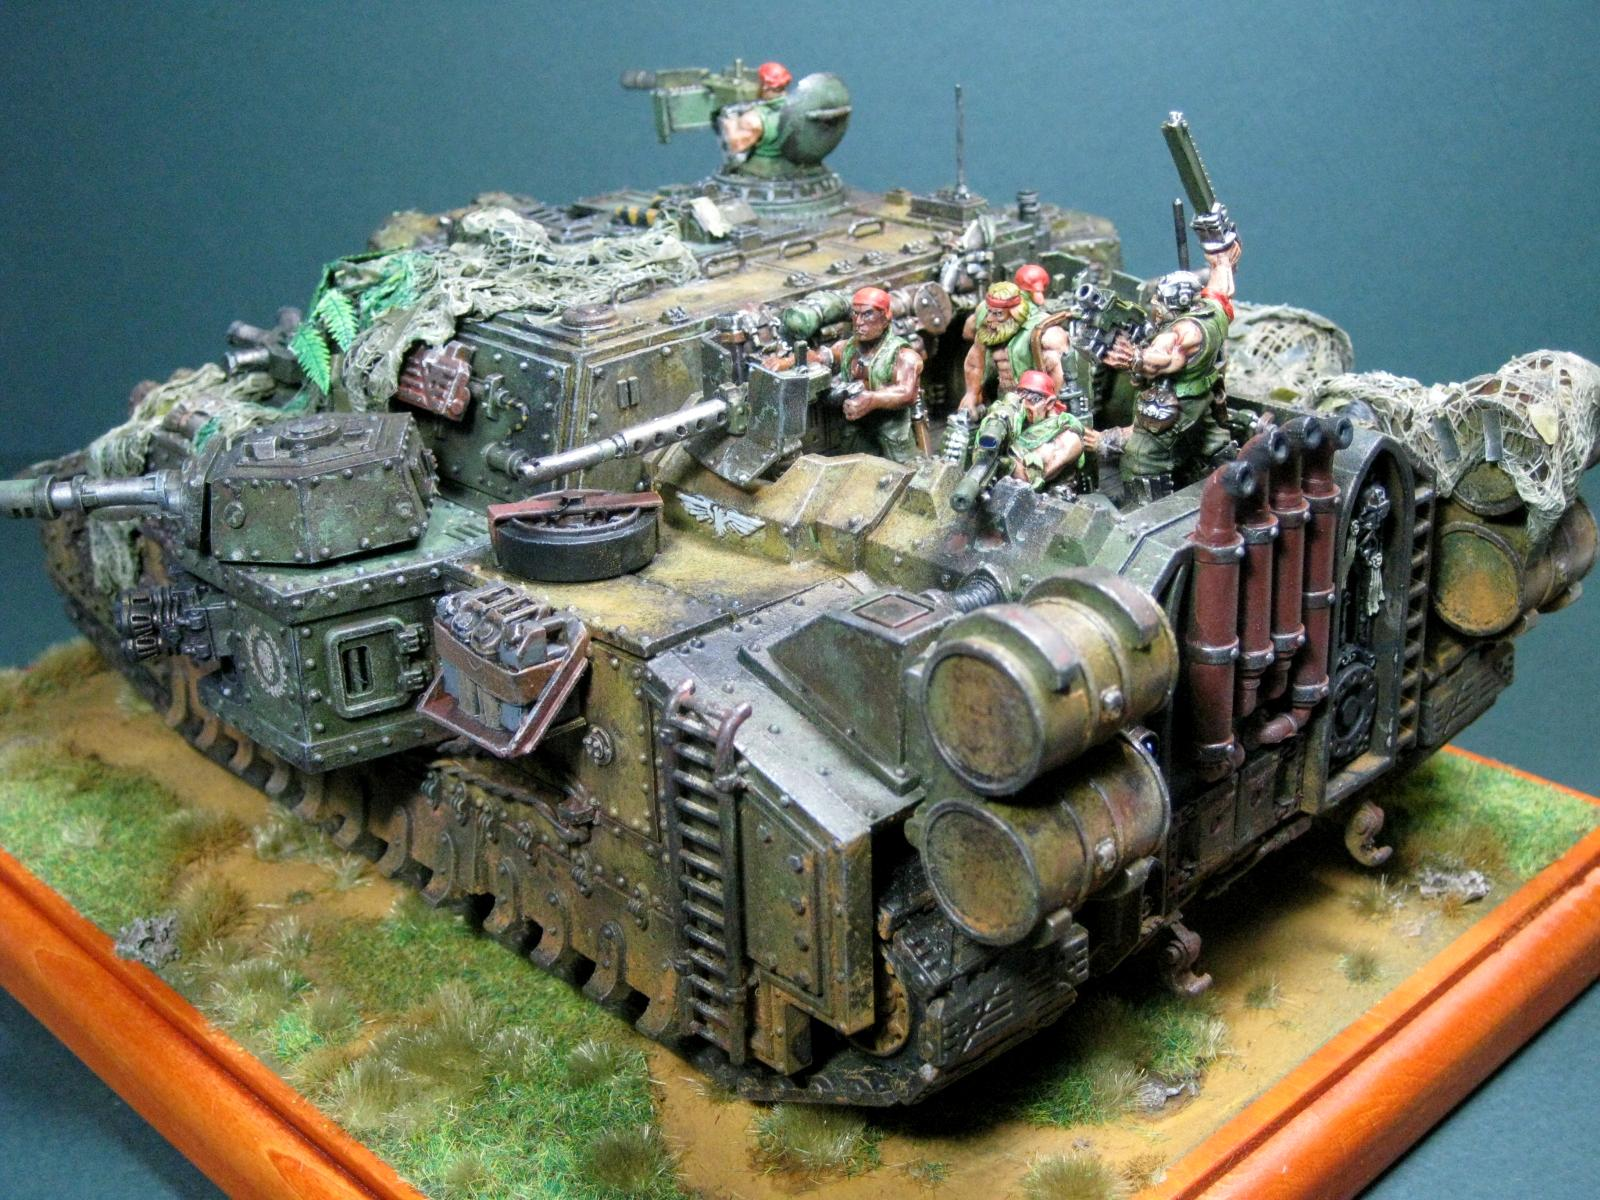 Catachan, Forge World, Imperial Guard, Orkmower, Stormlord, Super-heavy, Tank